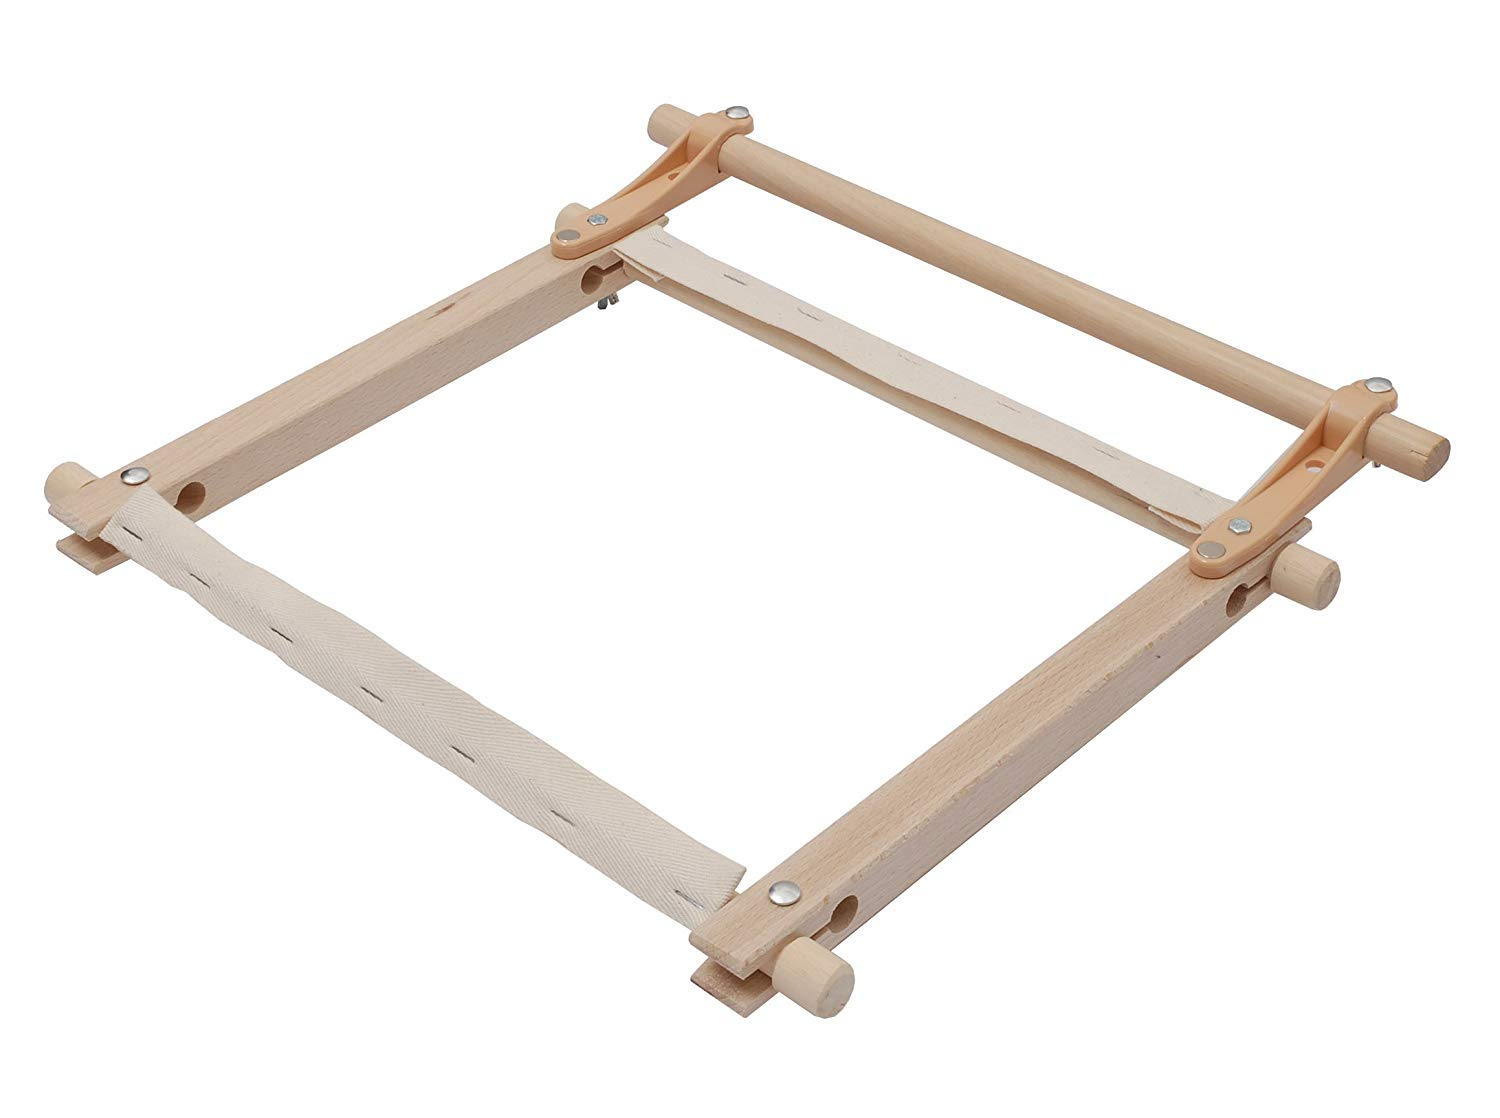 Elbesee Helping Hand Universal Hand Rotating Frame Holder Fits 12 To 18 Made In Great Britain!